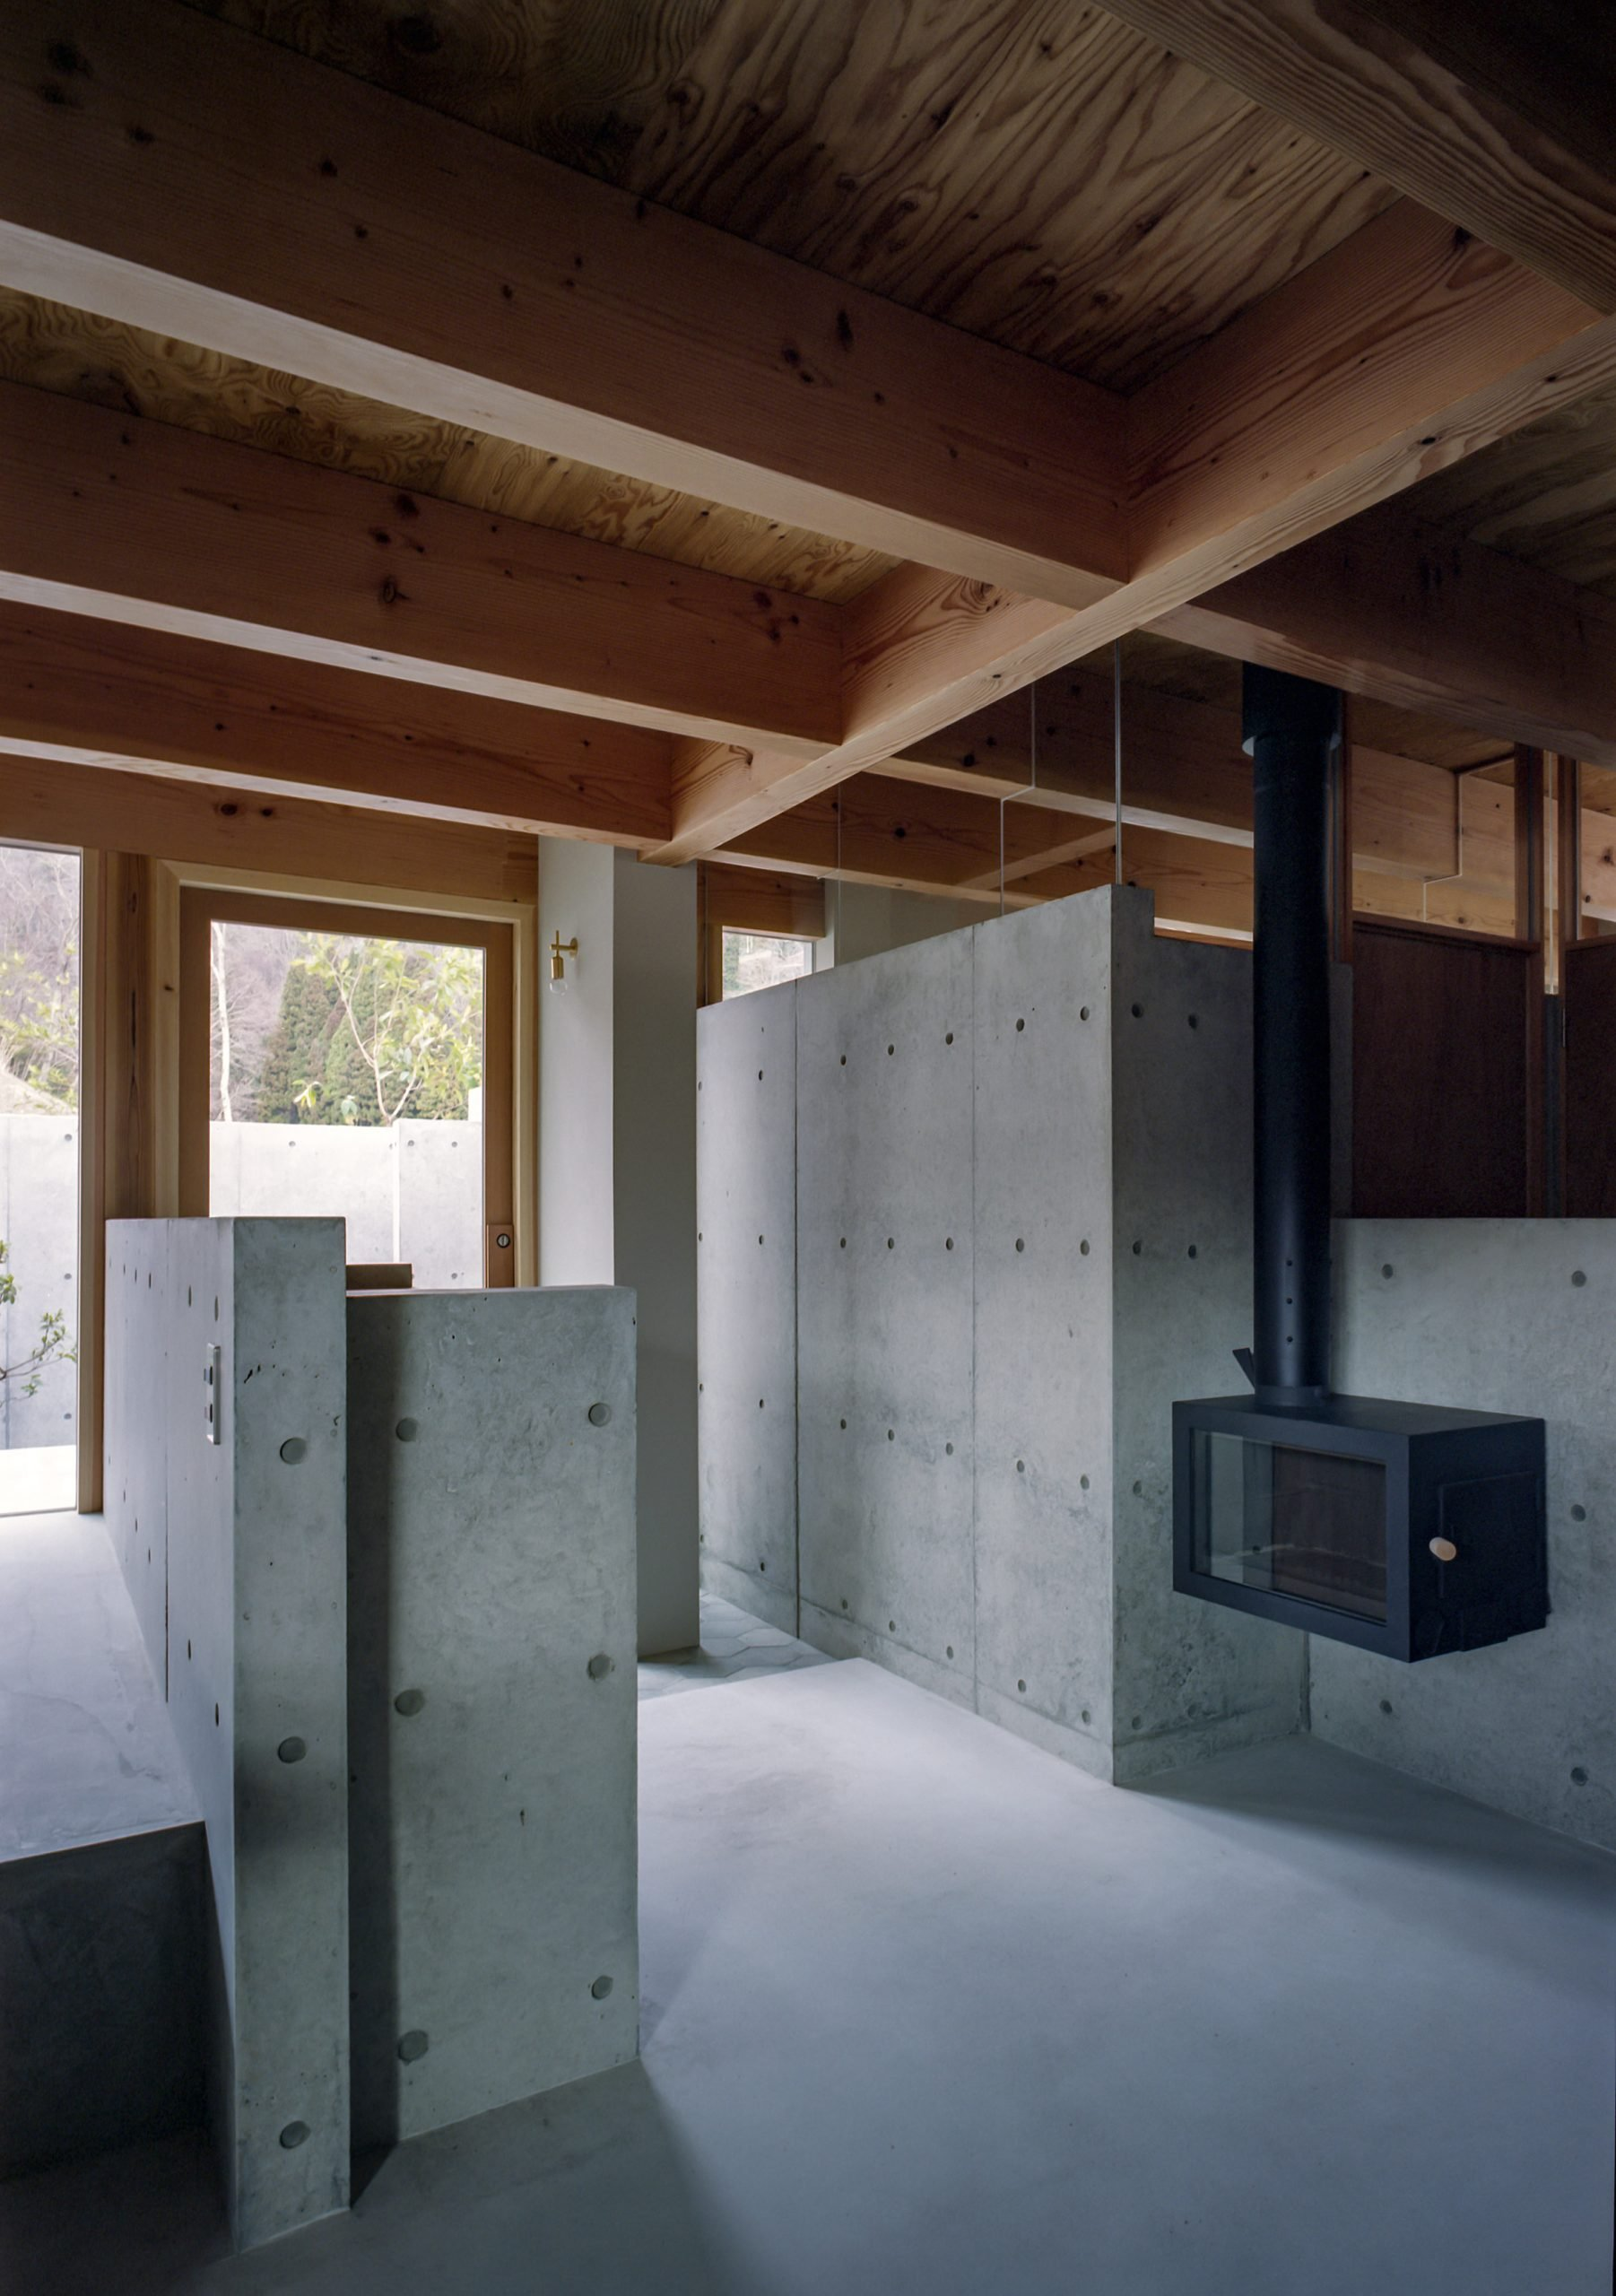 The concrete and wooden interiors of a Japanese house by FujiwaraMuro Architects